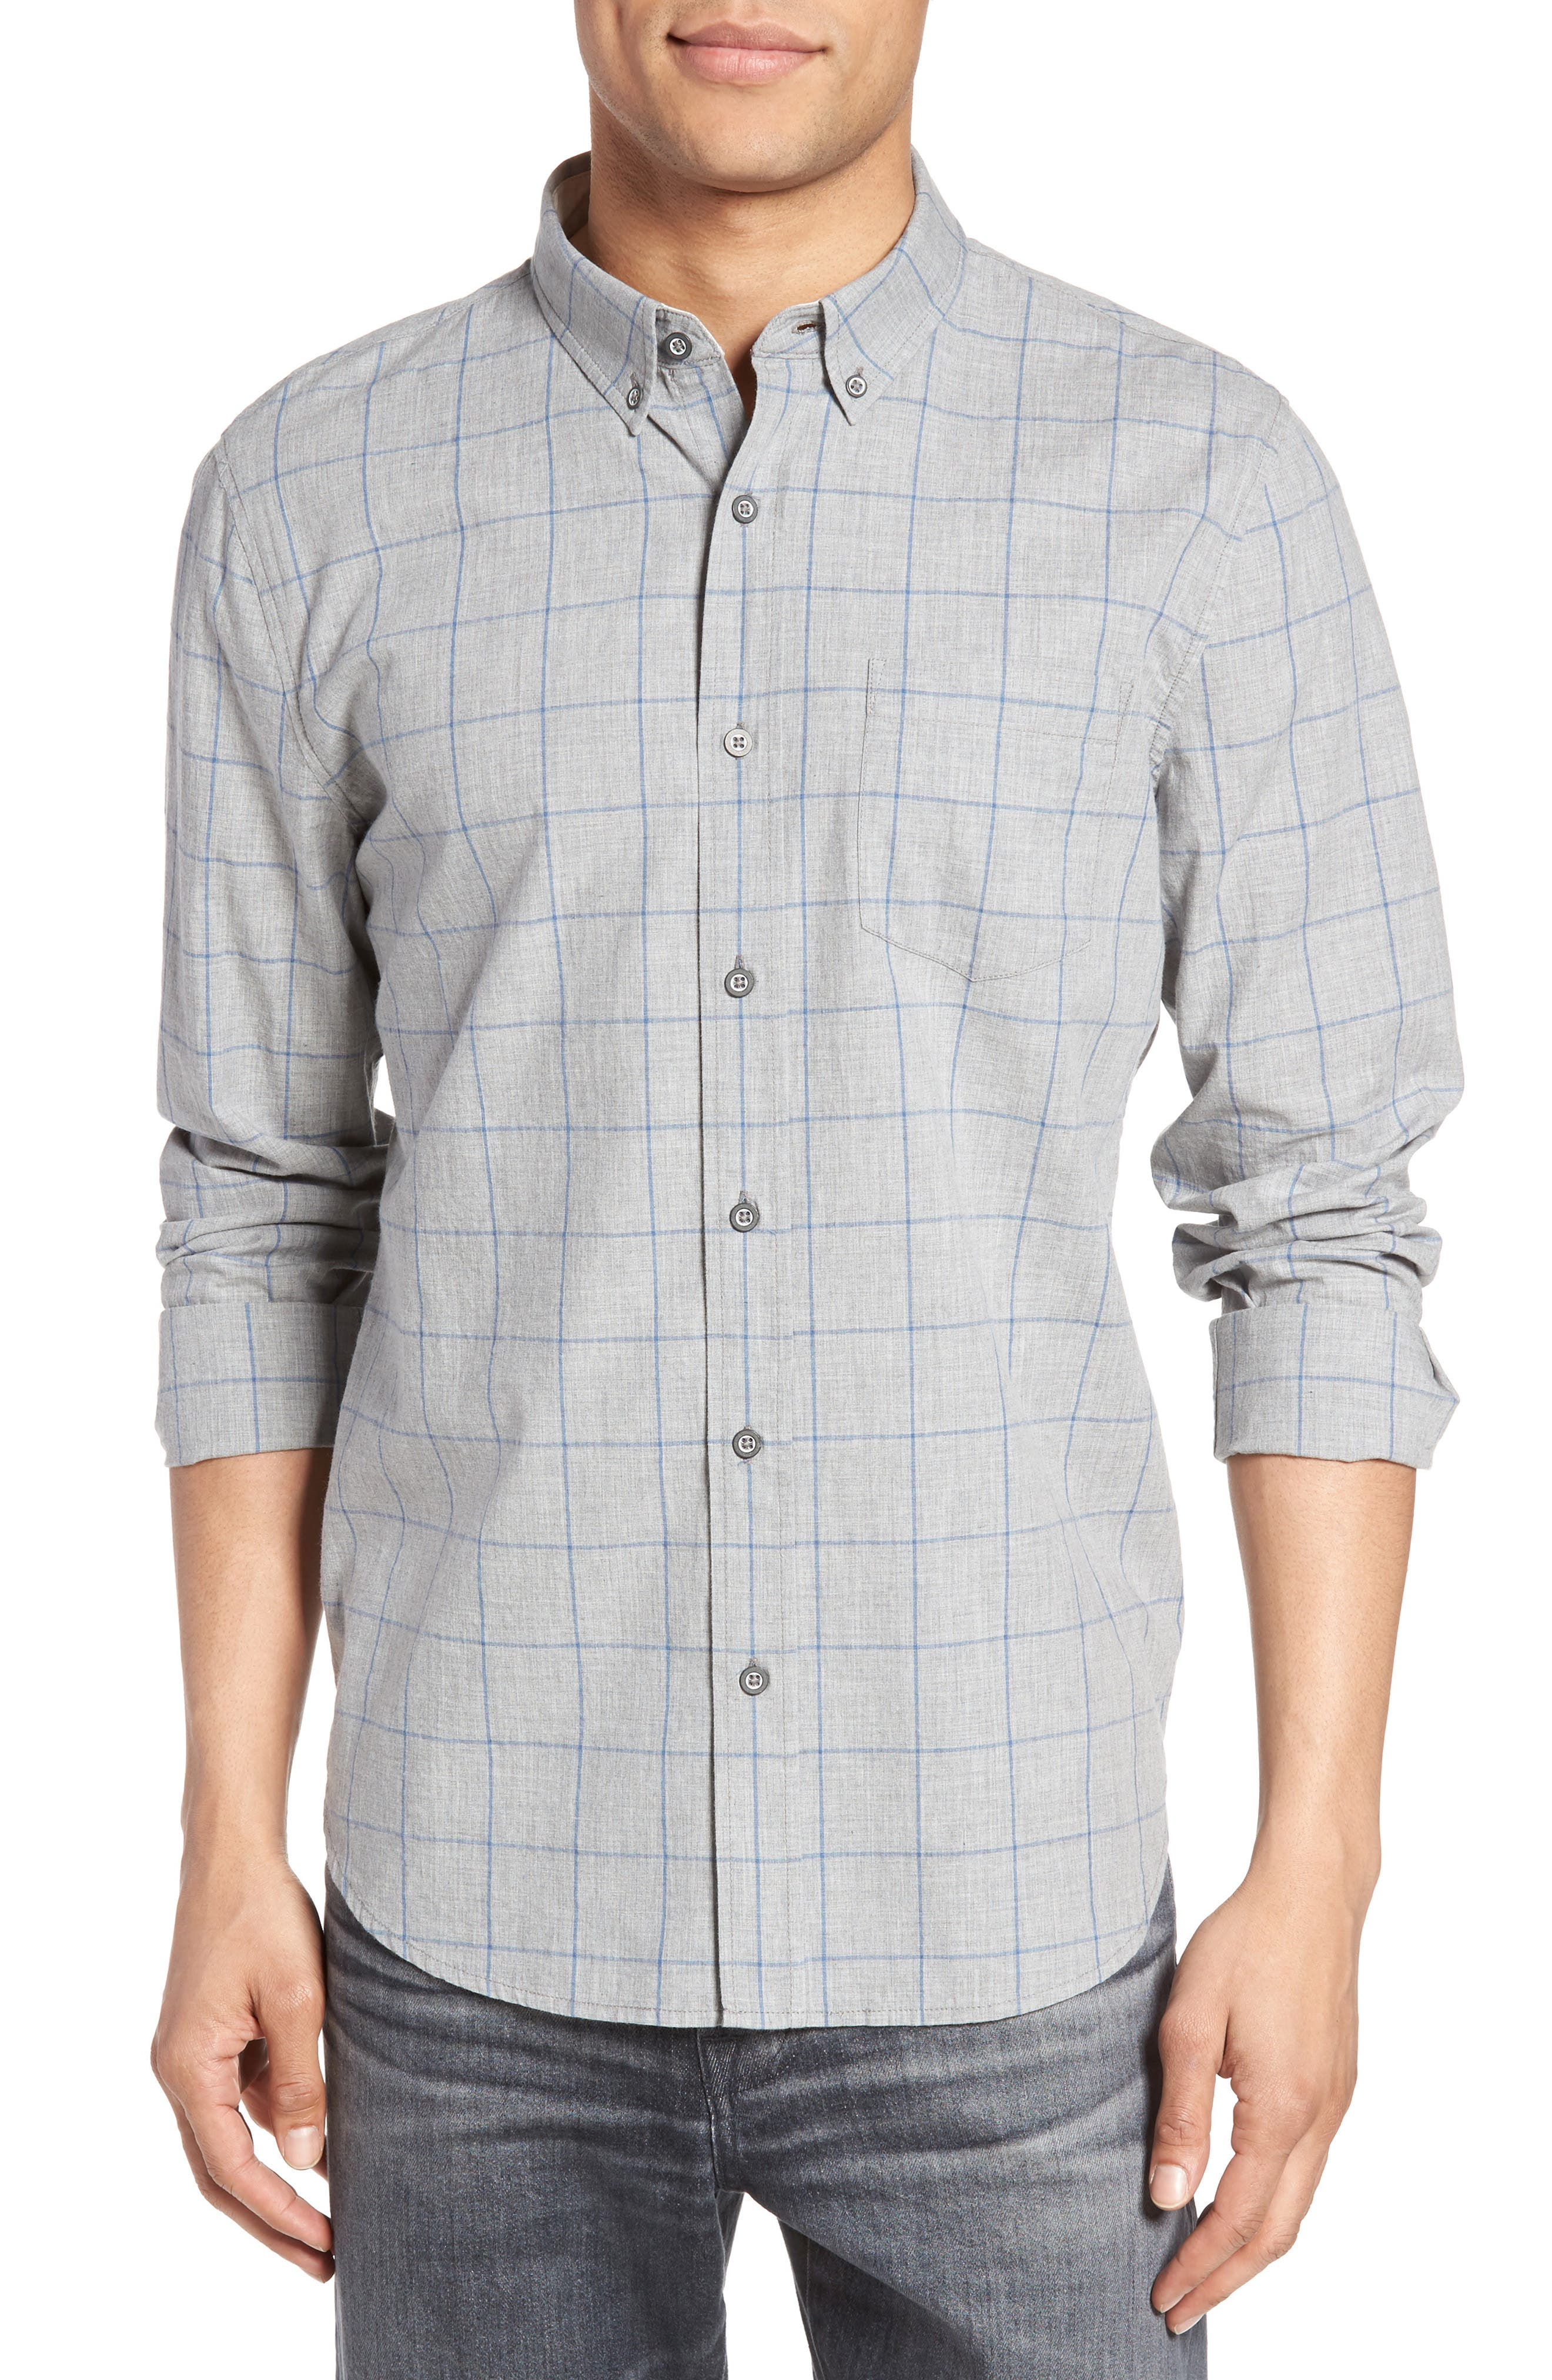 Grady Cotton Sport Shirt,                         Main,                         color, 087